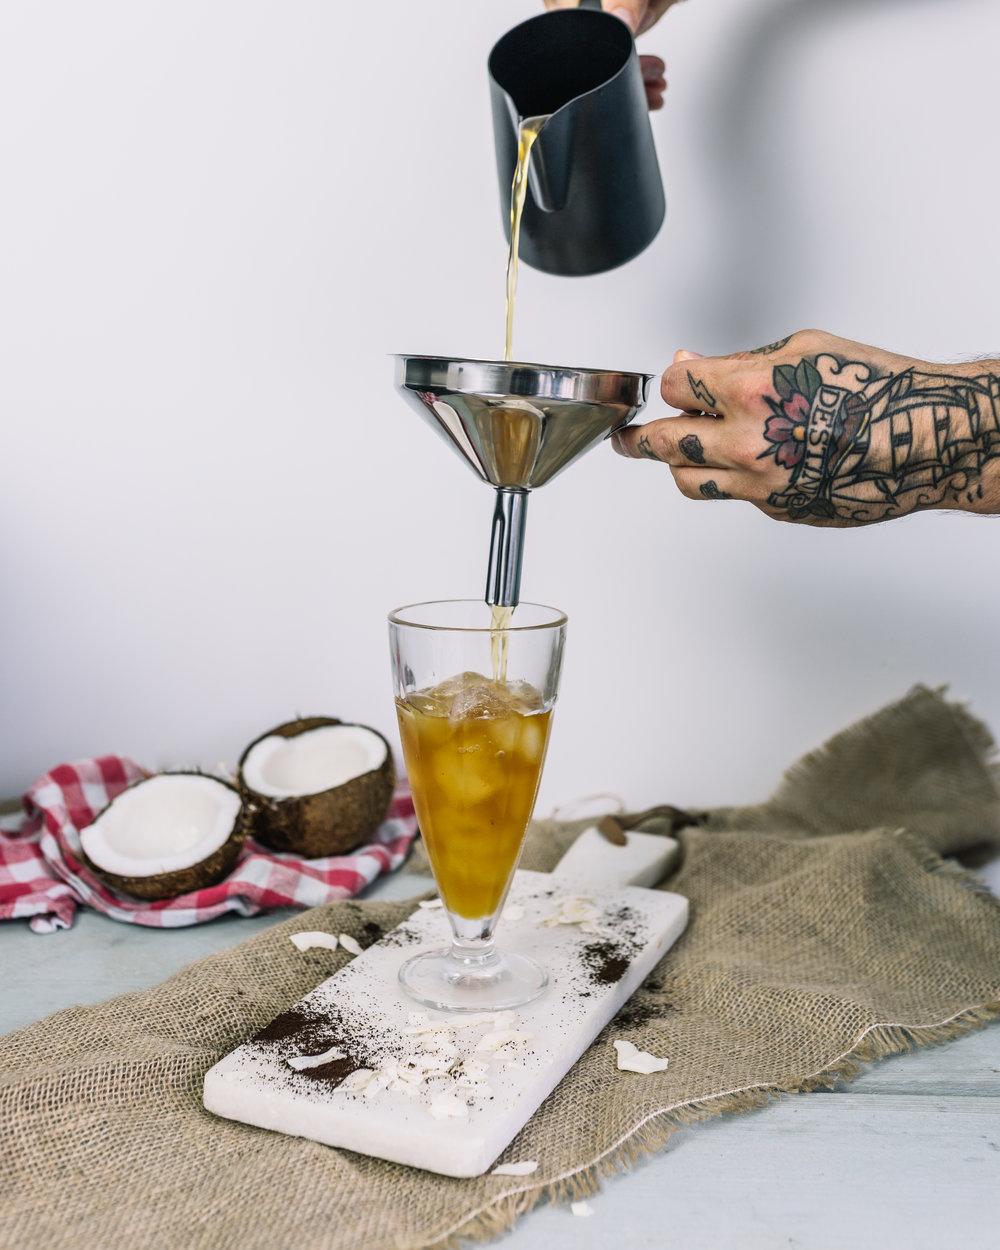 #2 Coconut ice drip coffee14.jpg